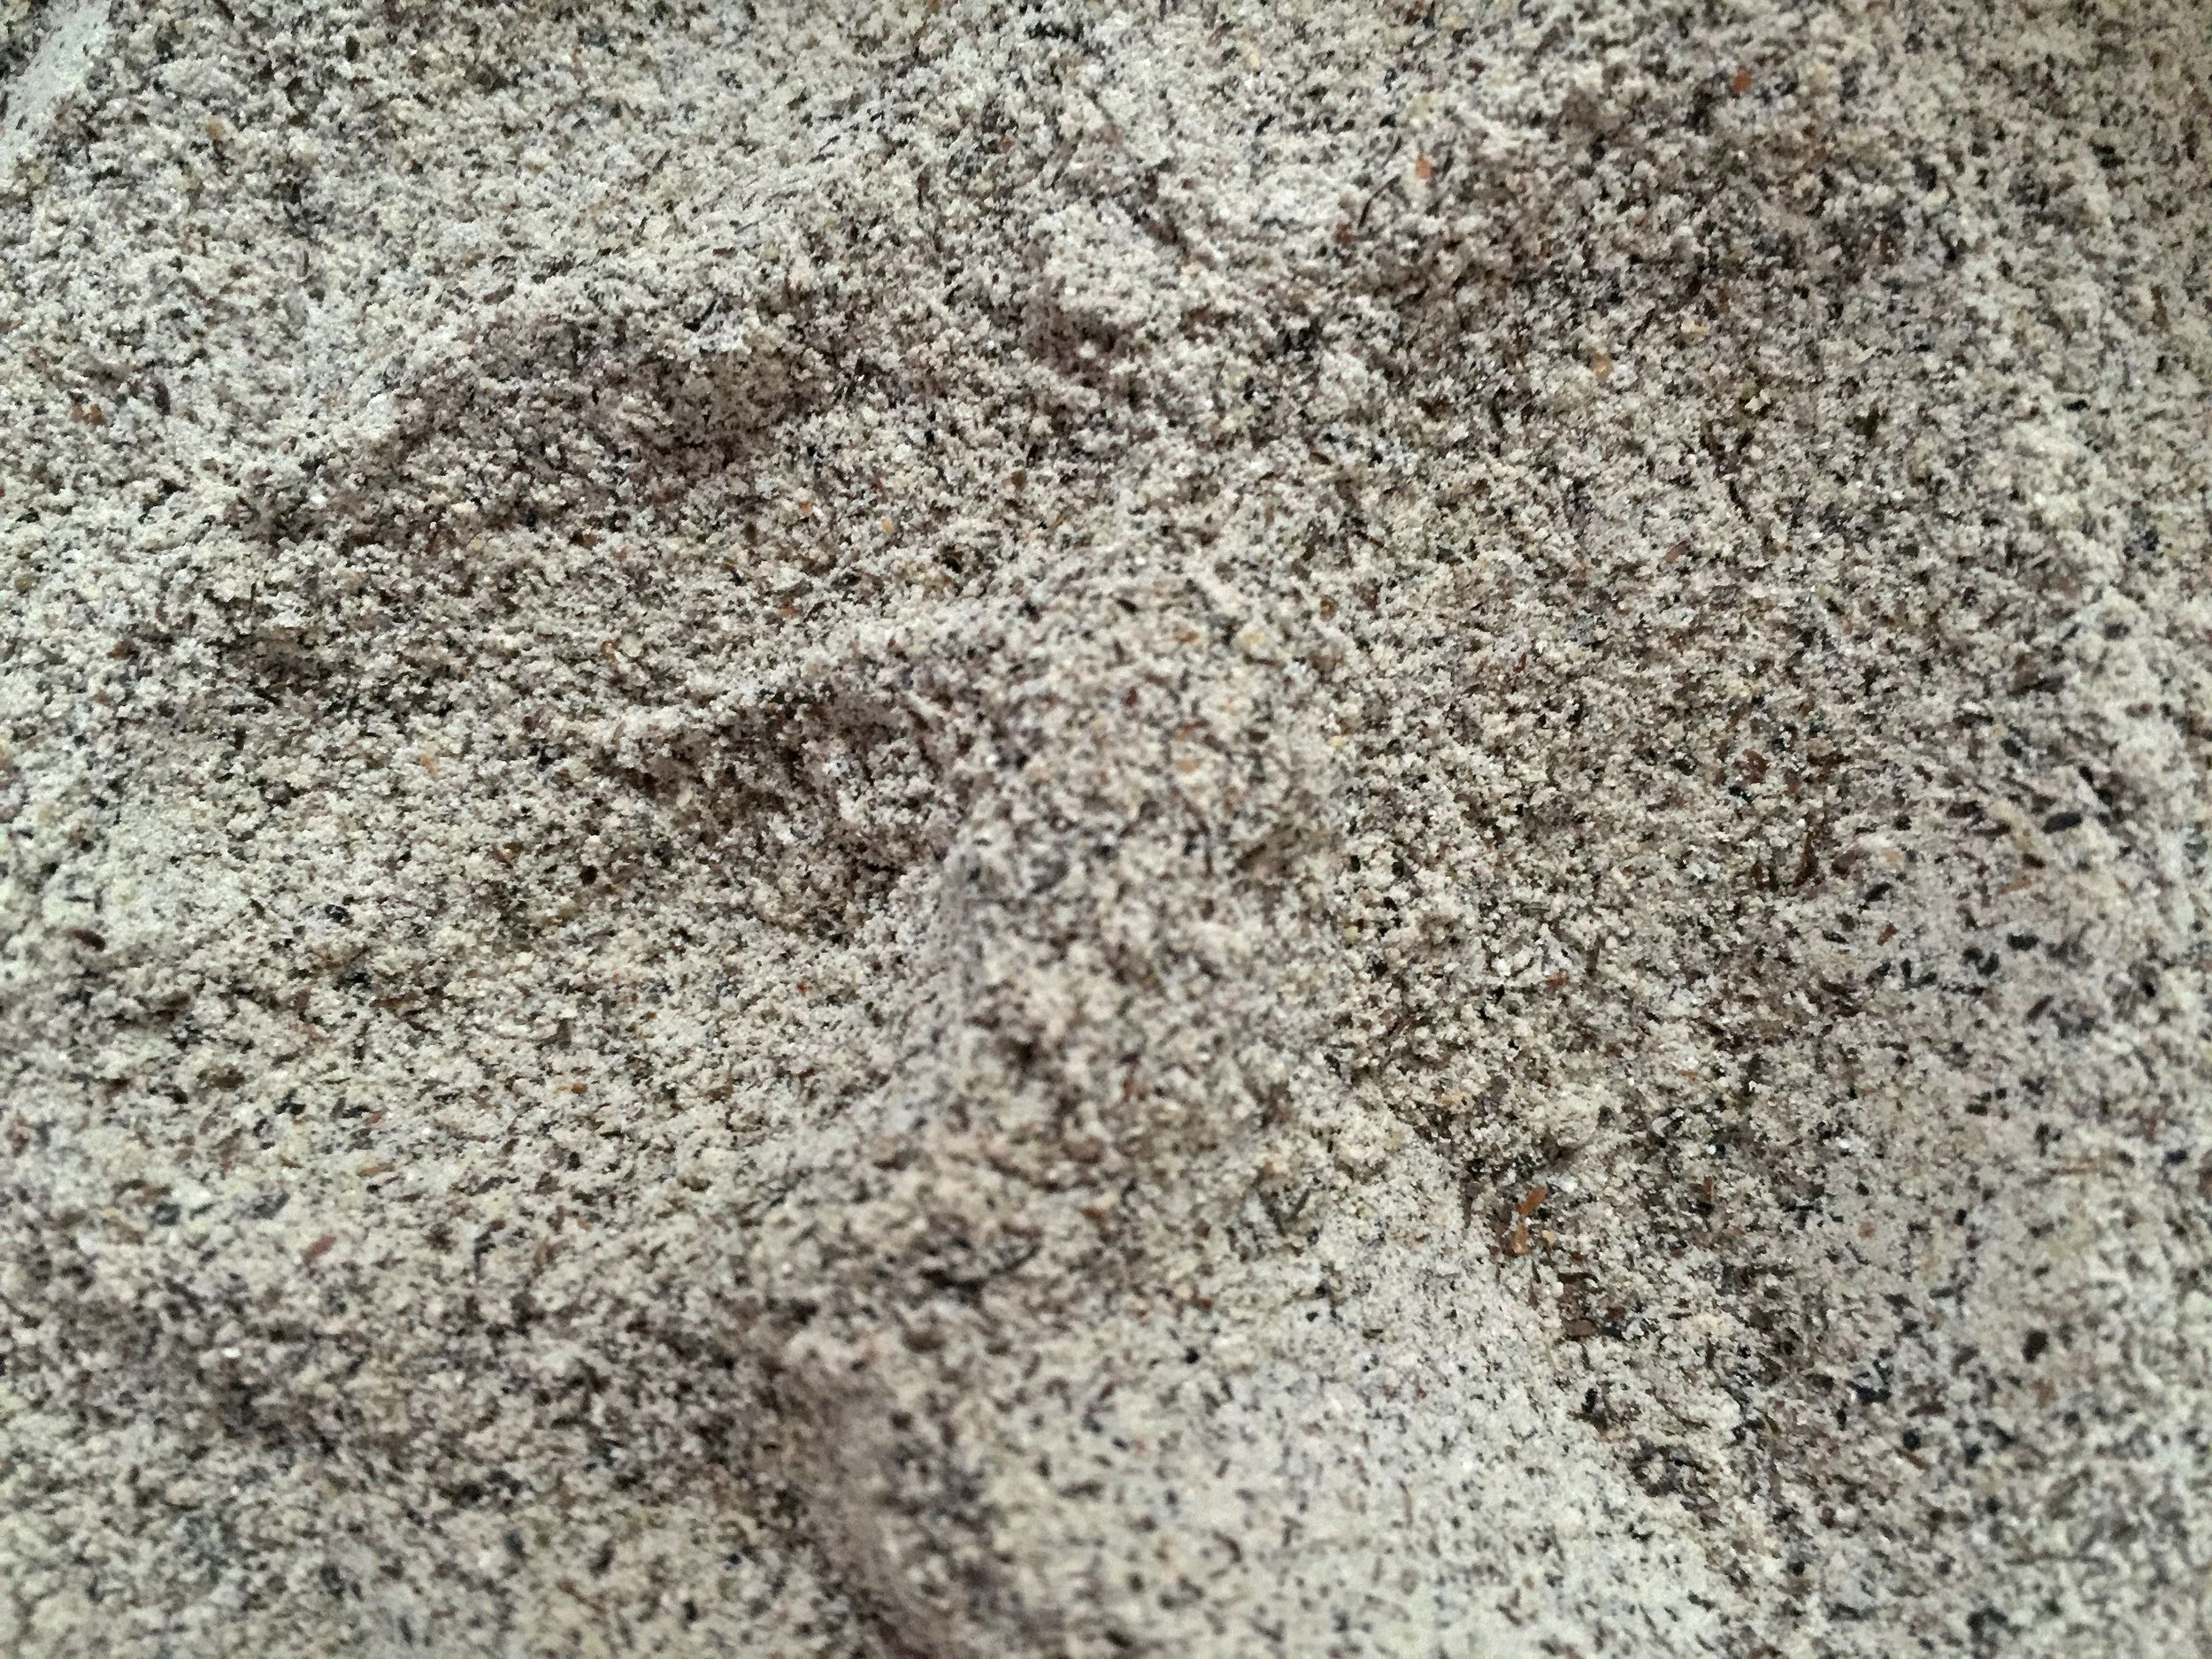 Nope, that's not beach sand. It's buckwheat flour from the Easton Public Market.